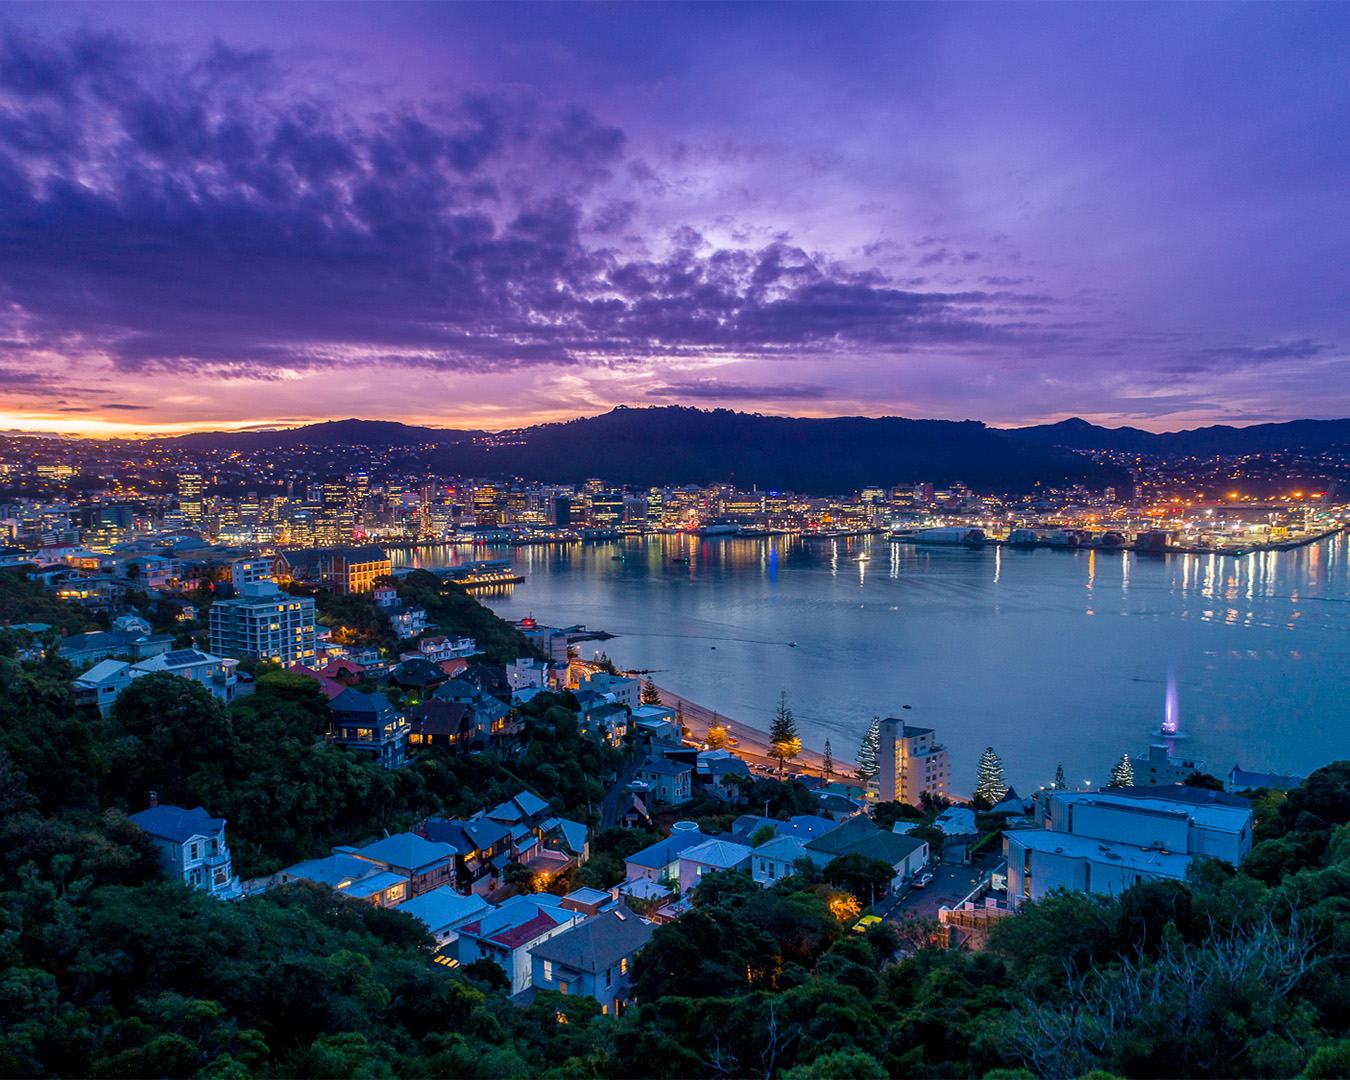 A view over Wellington at sunset.